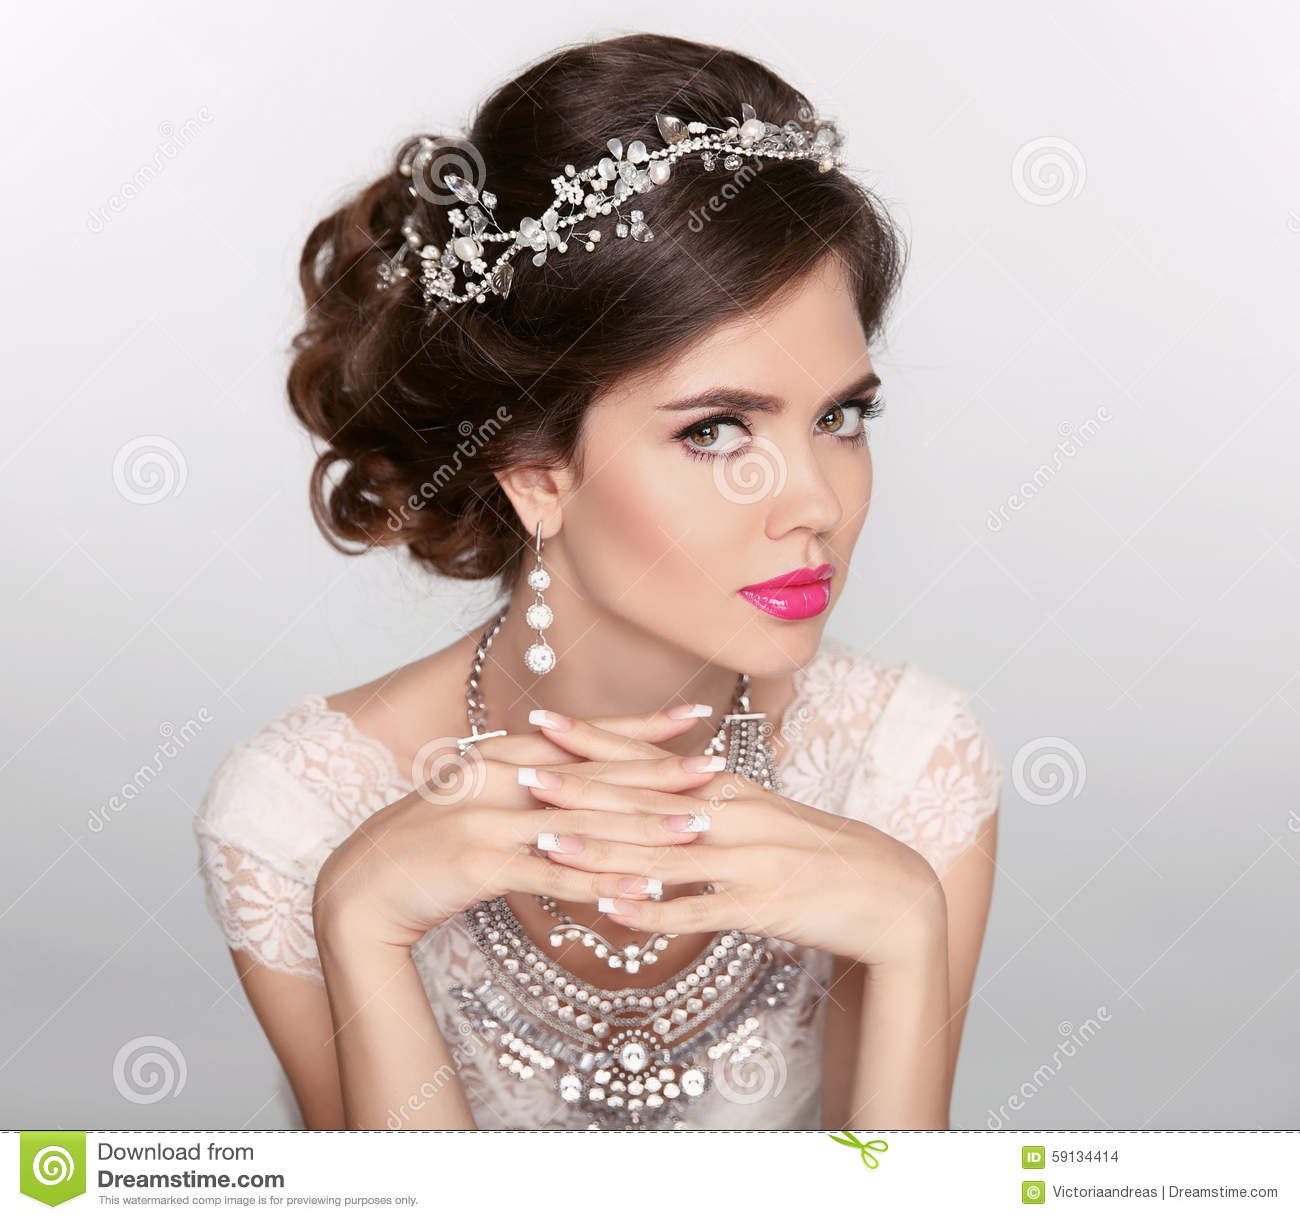 Beautiful Elegant Girl Model With Jewelry Makeup And Retro Hair Styling Manicured Nails Stock